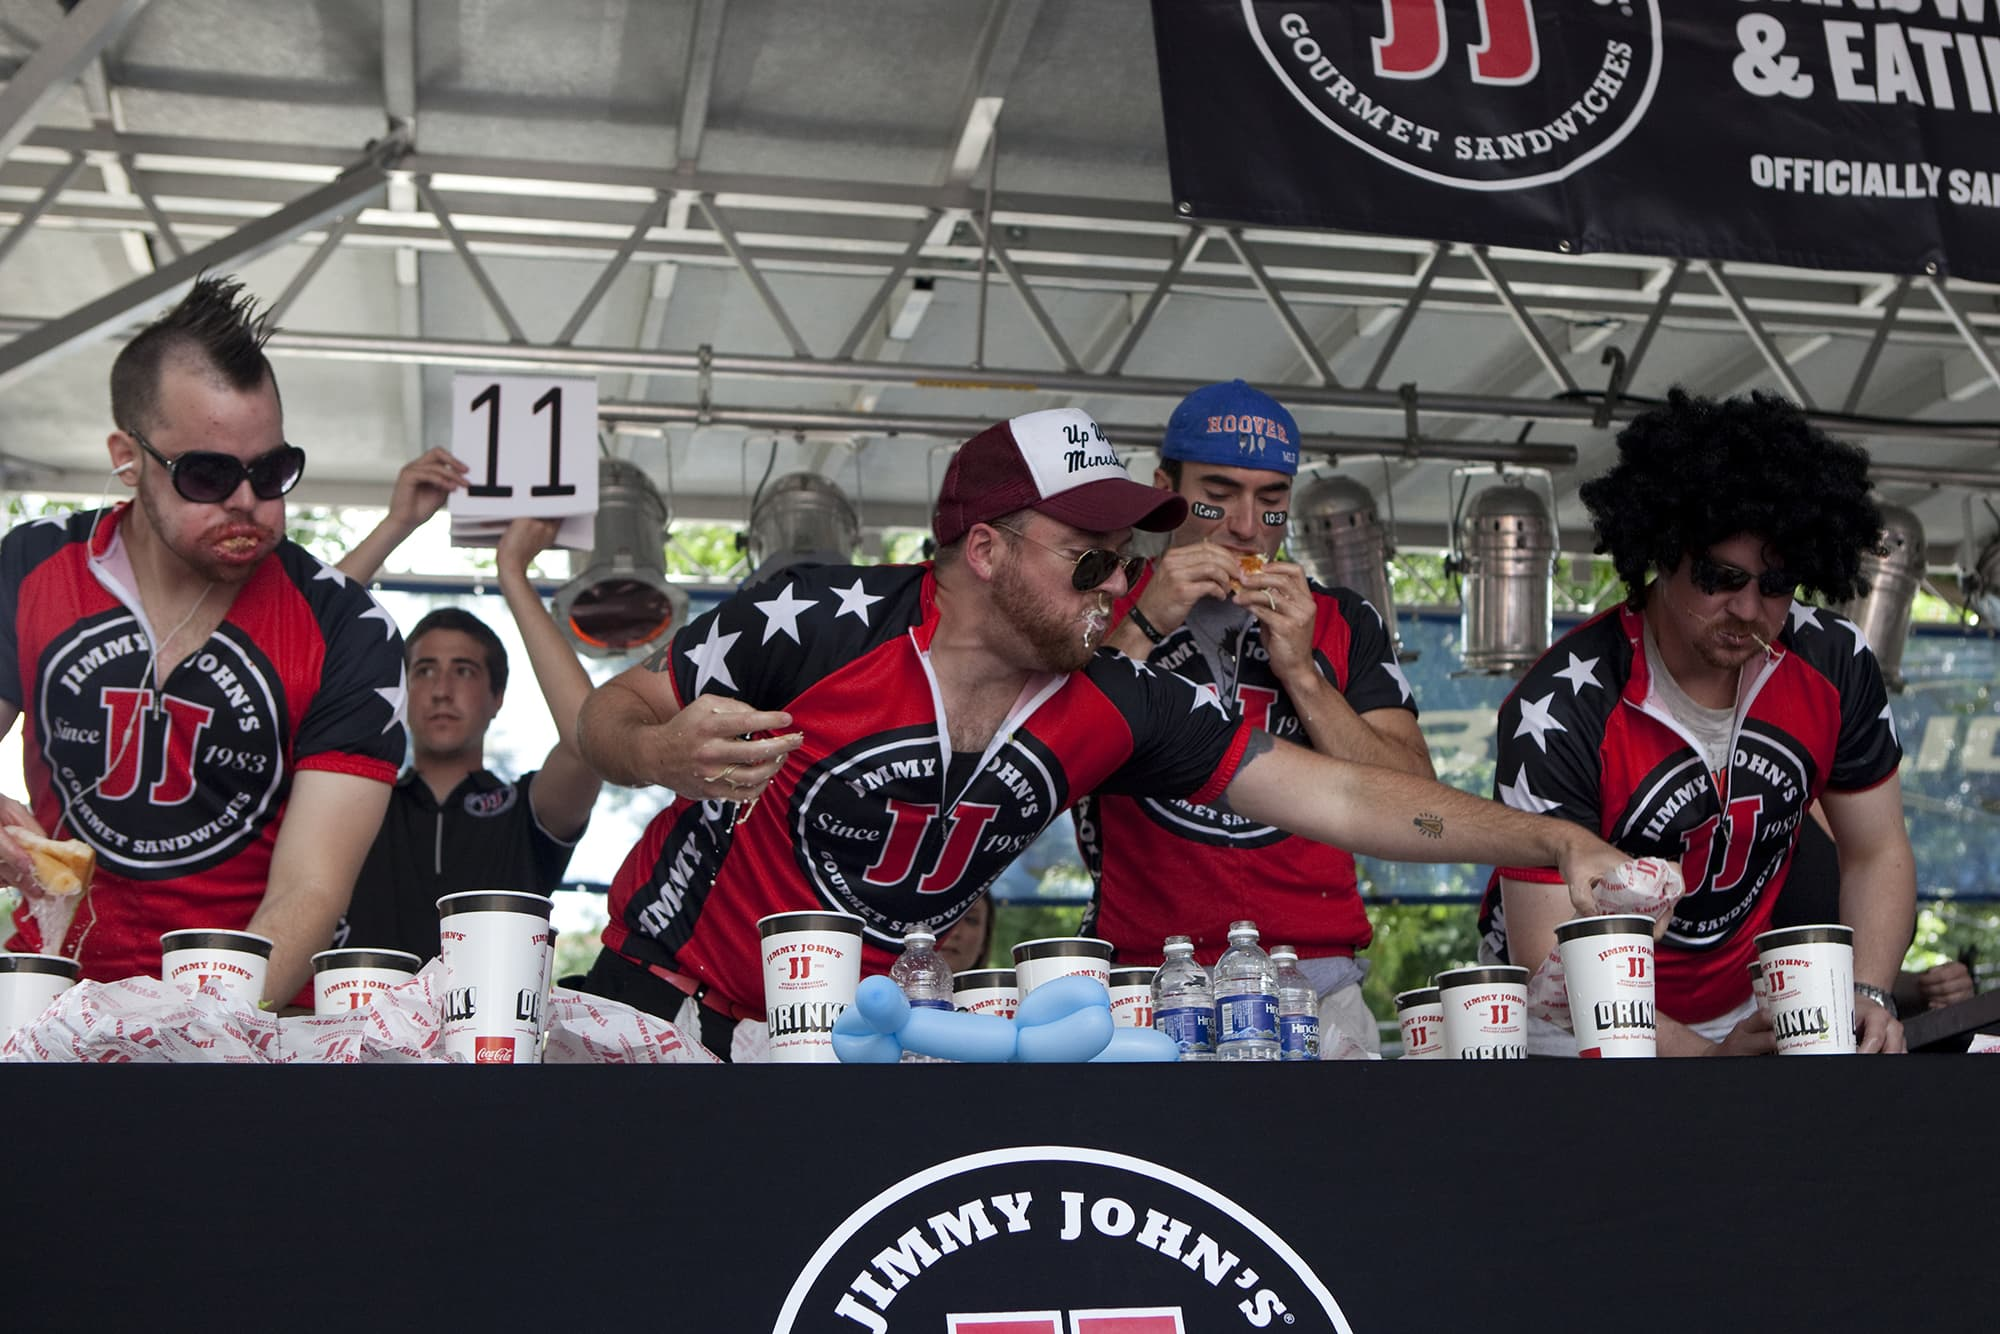 Jimmy John's Freaky Fast Sandwich Eating Contest